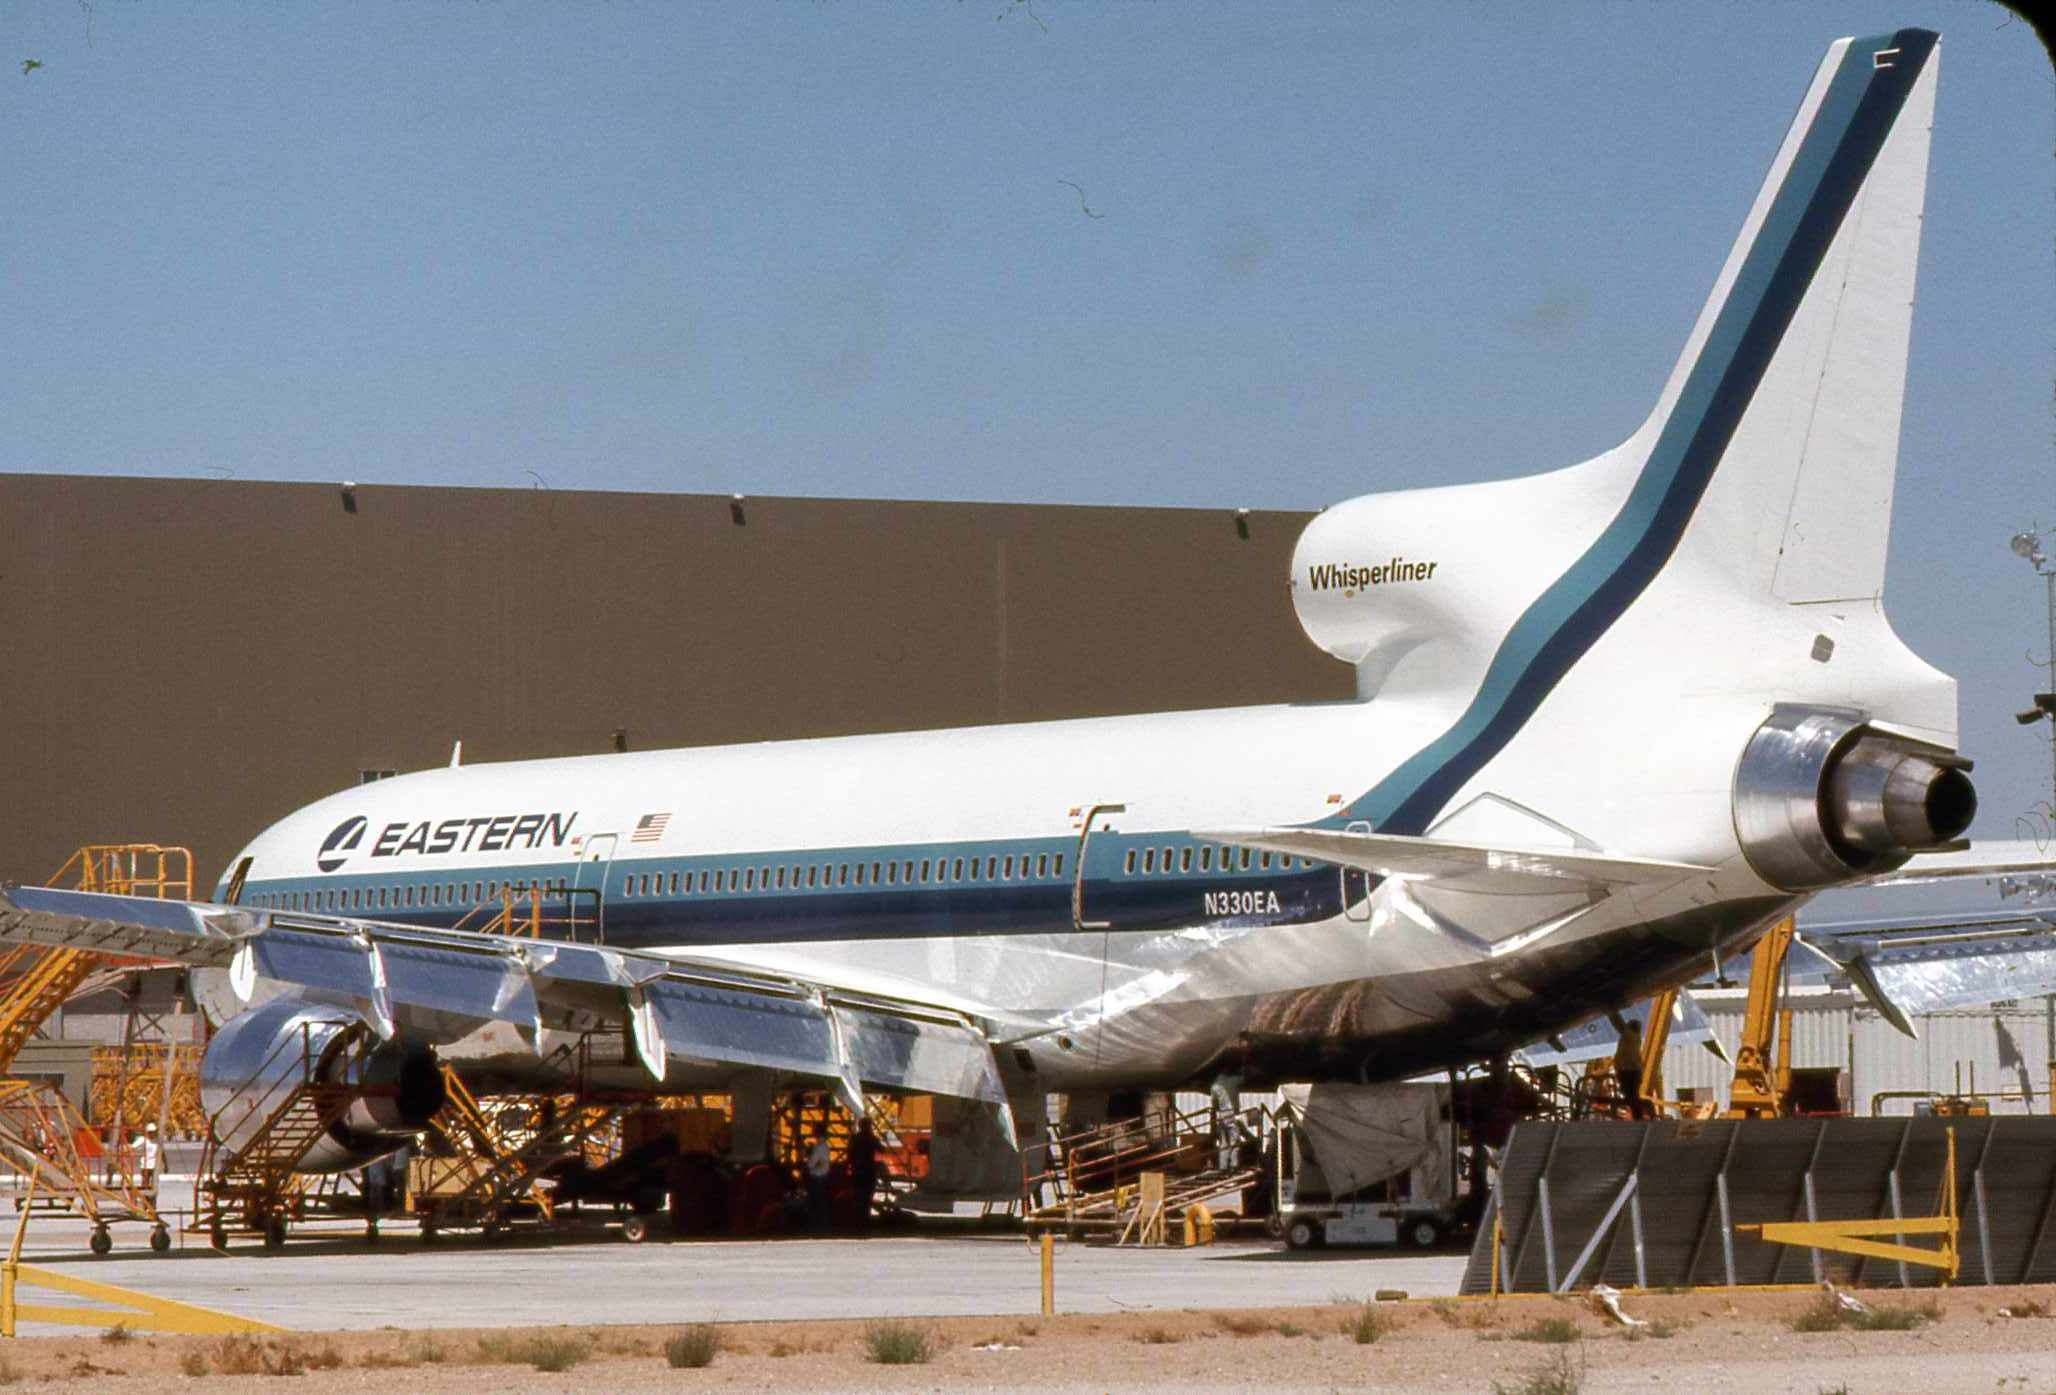 File:Eastern Air Lines L-1011 N330EA.jpg